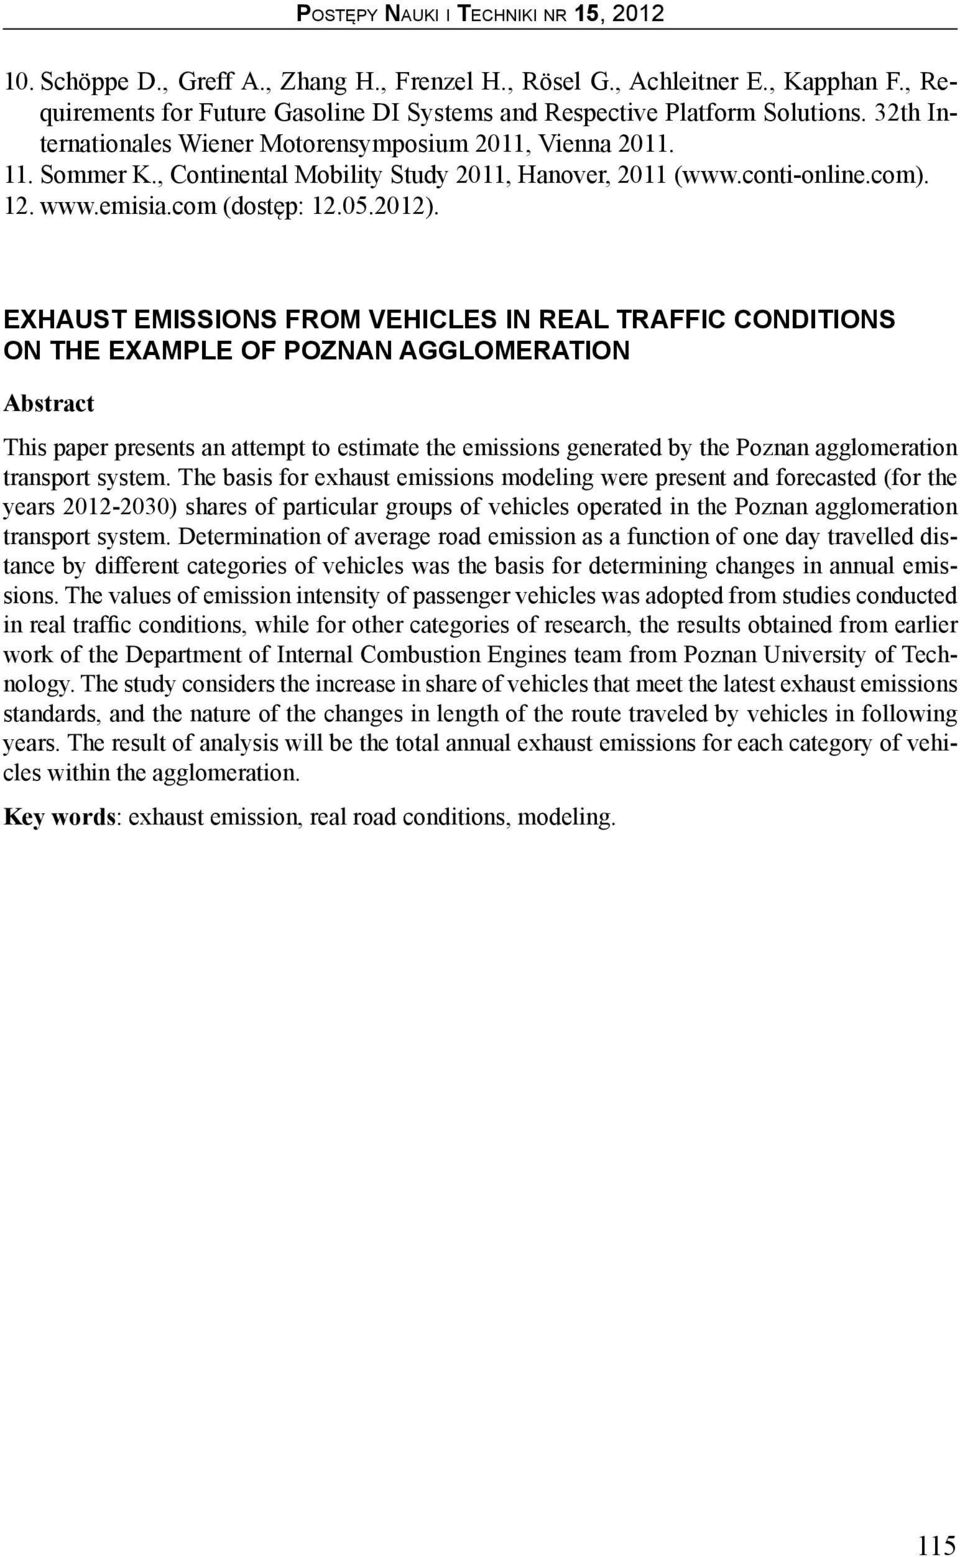 EXHAUST EMISSIONS FROM VEHICLES IN REAL TRAFFIC CONDITIONS ON THE EXAMPLE OF POZNAN AGGLOMERATION Abstract This paper presents an attempt to estimate the emissions generated by the Poznan